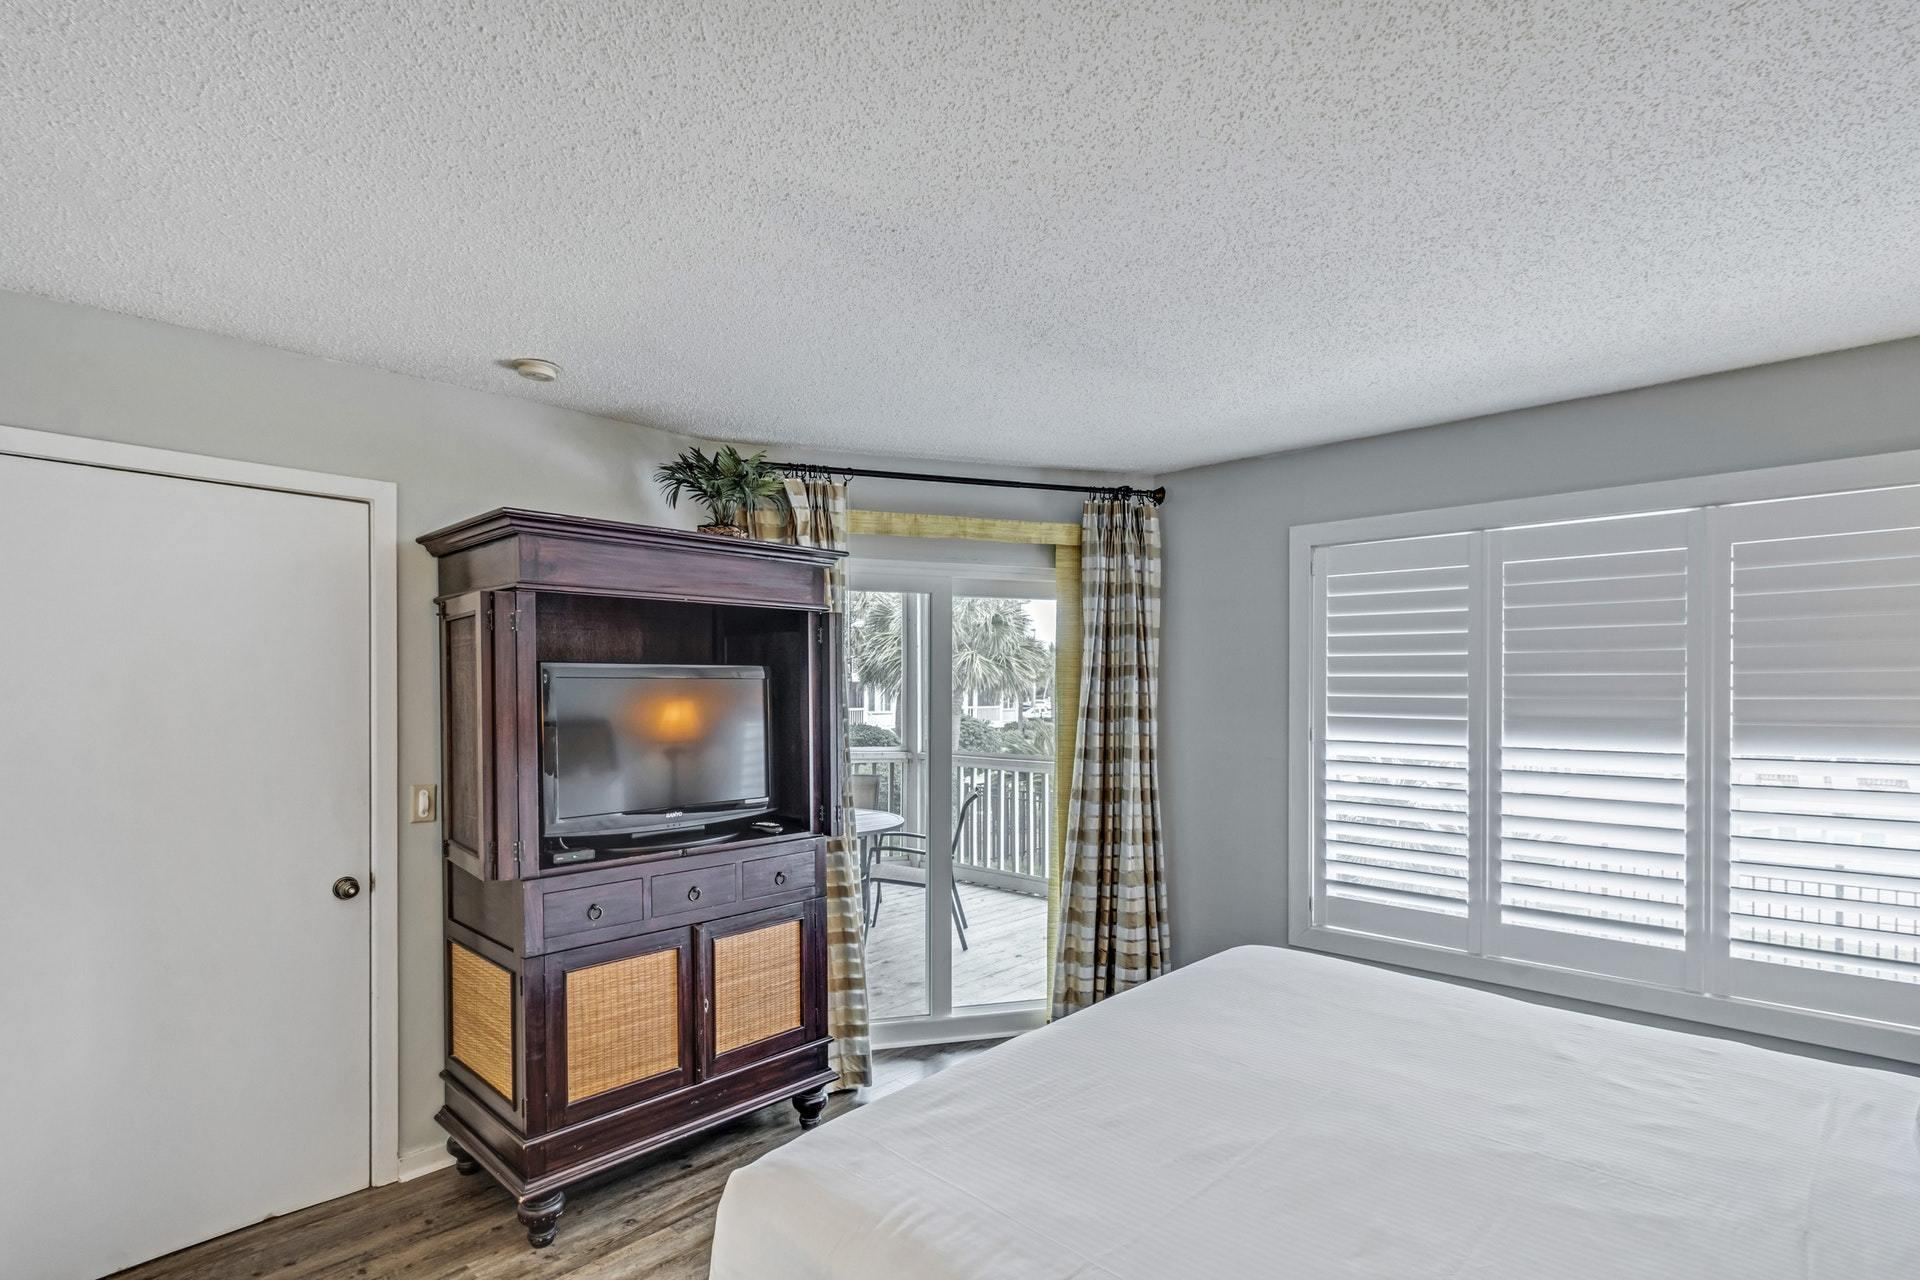 Wild Dunes Resort Homes For Sale - 102 I Tidewater, Isle of Palms, SC - 19